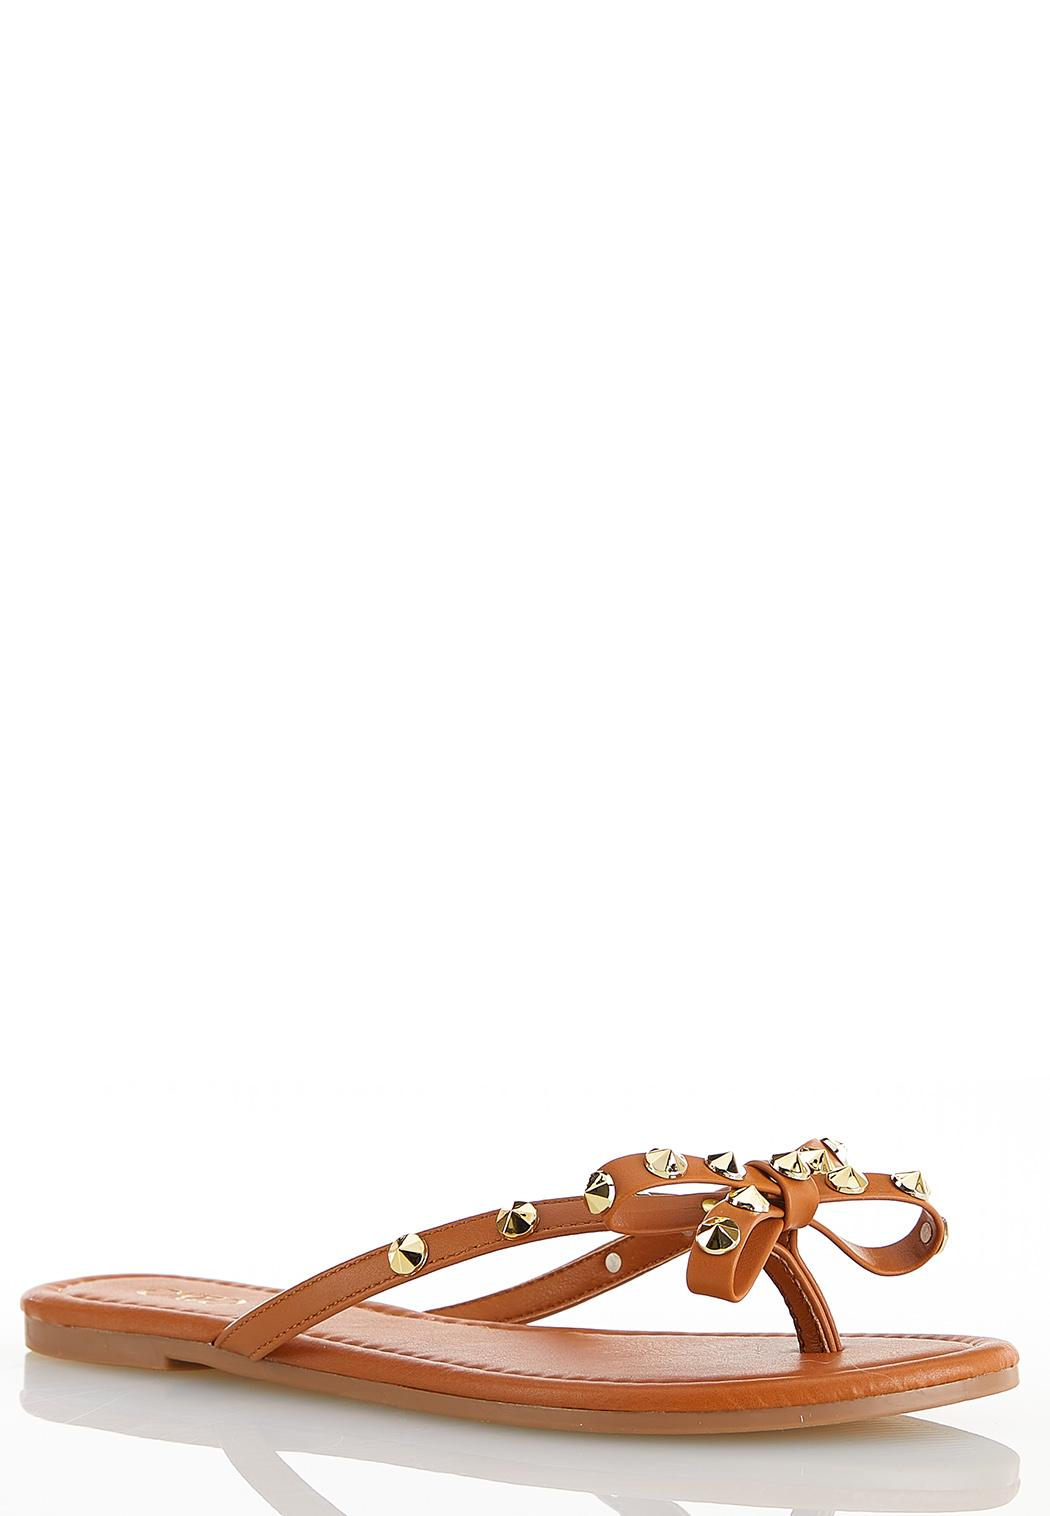 Stud Bow Thong Sandals